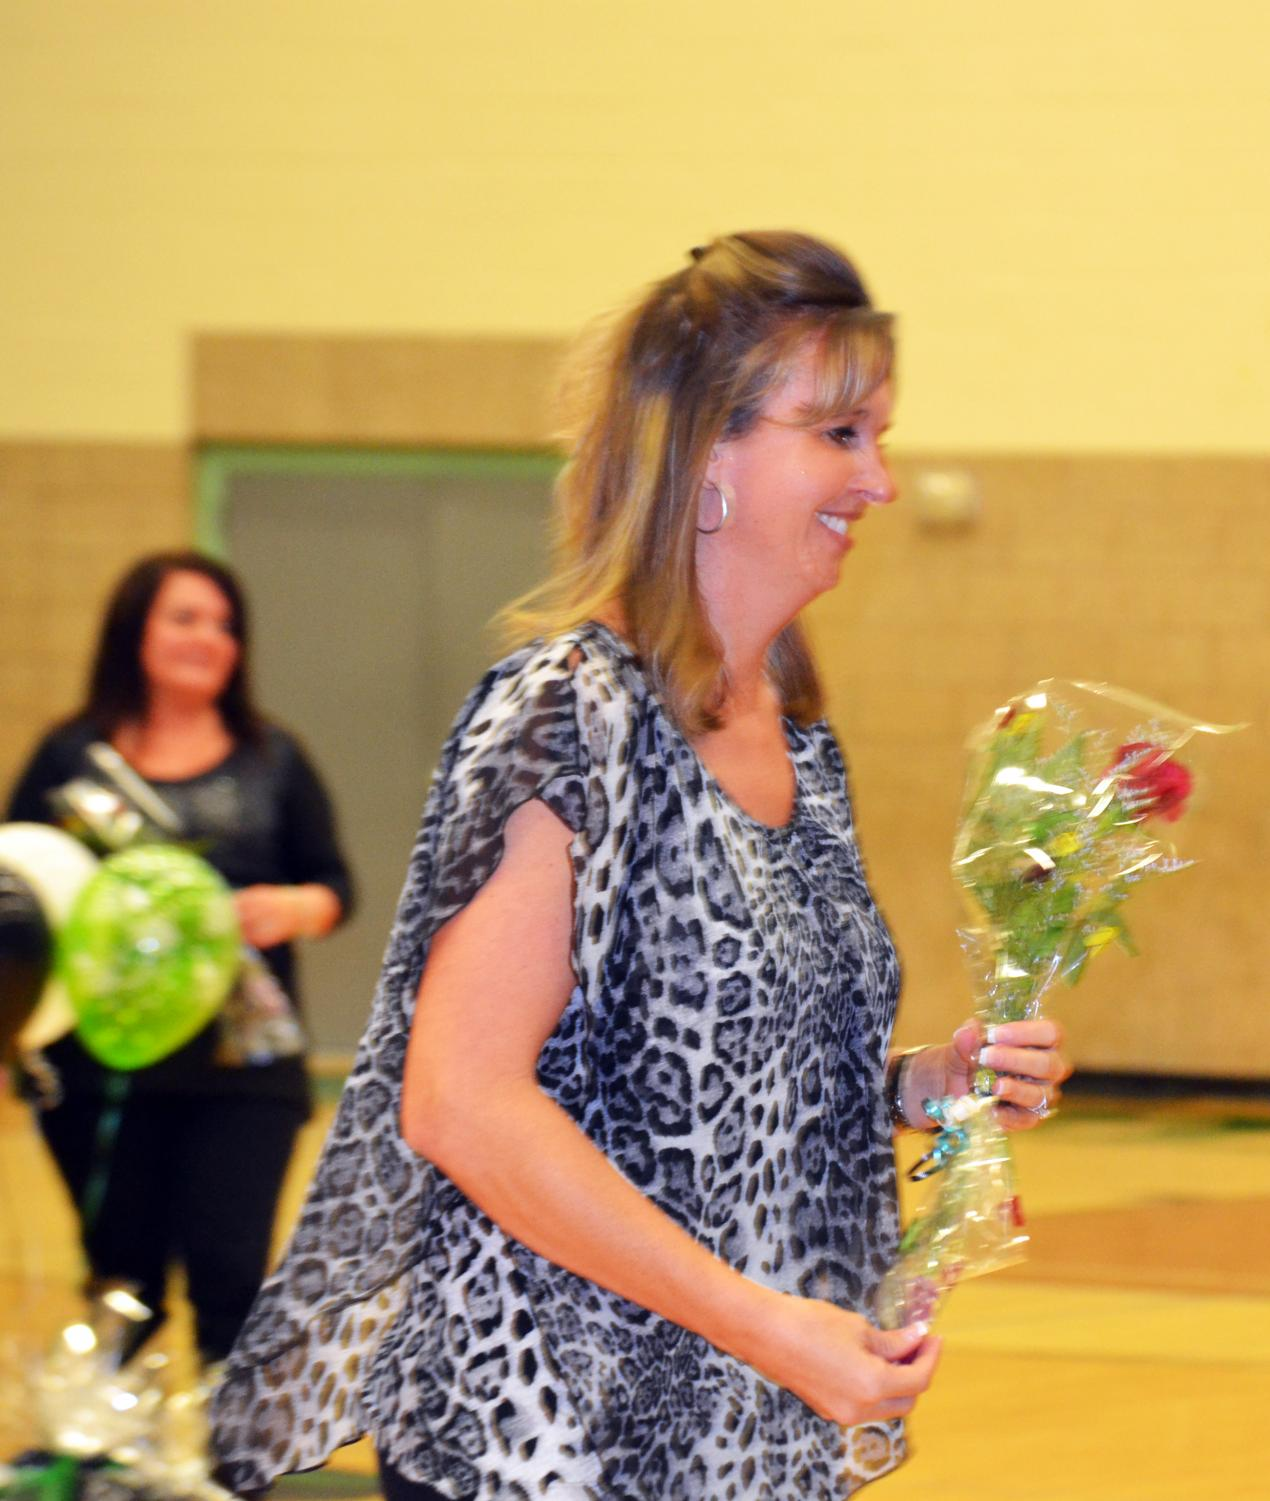 Head+Coach+Courtnie+Smith+recognized+with+flowers+at+Senior+night.+